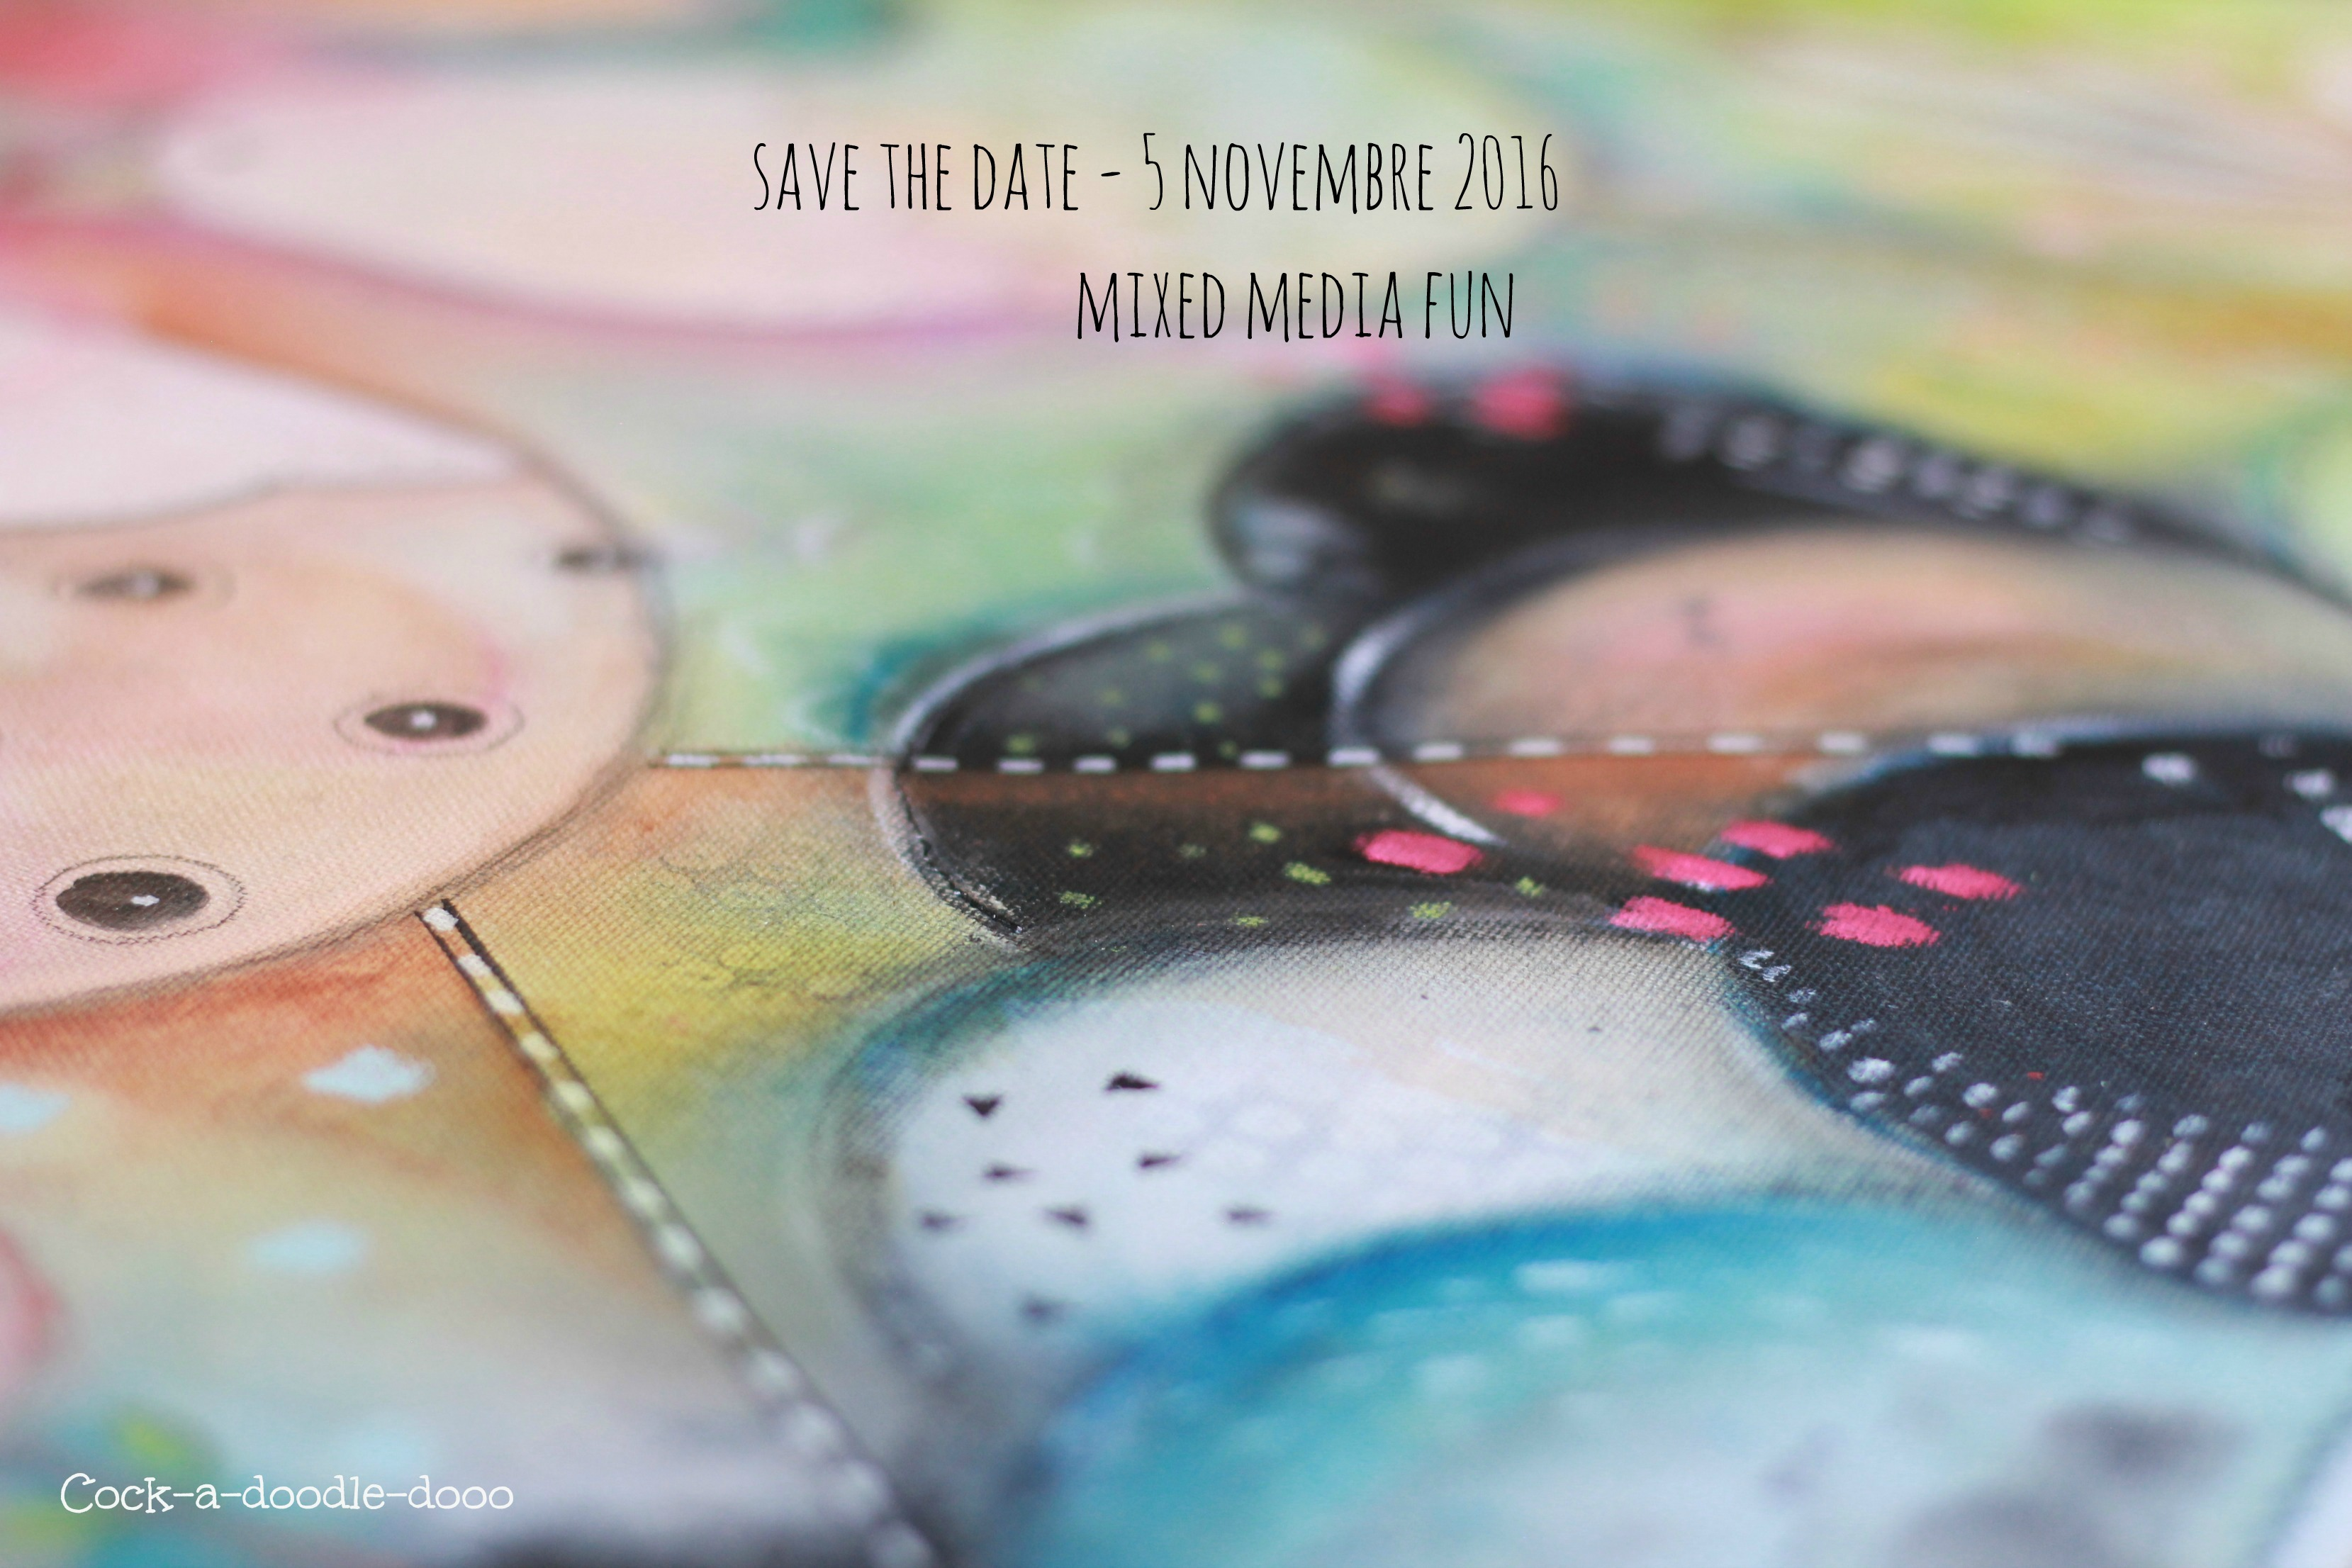 save-the-date-1